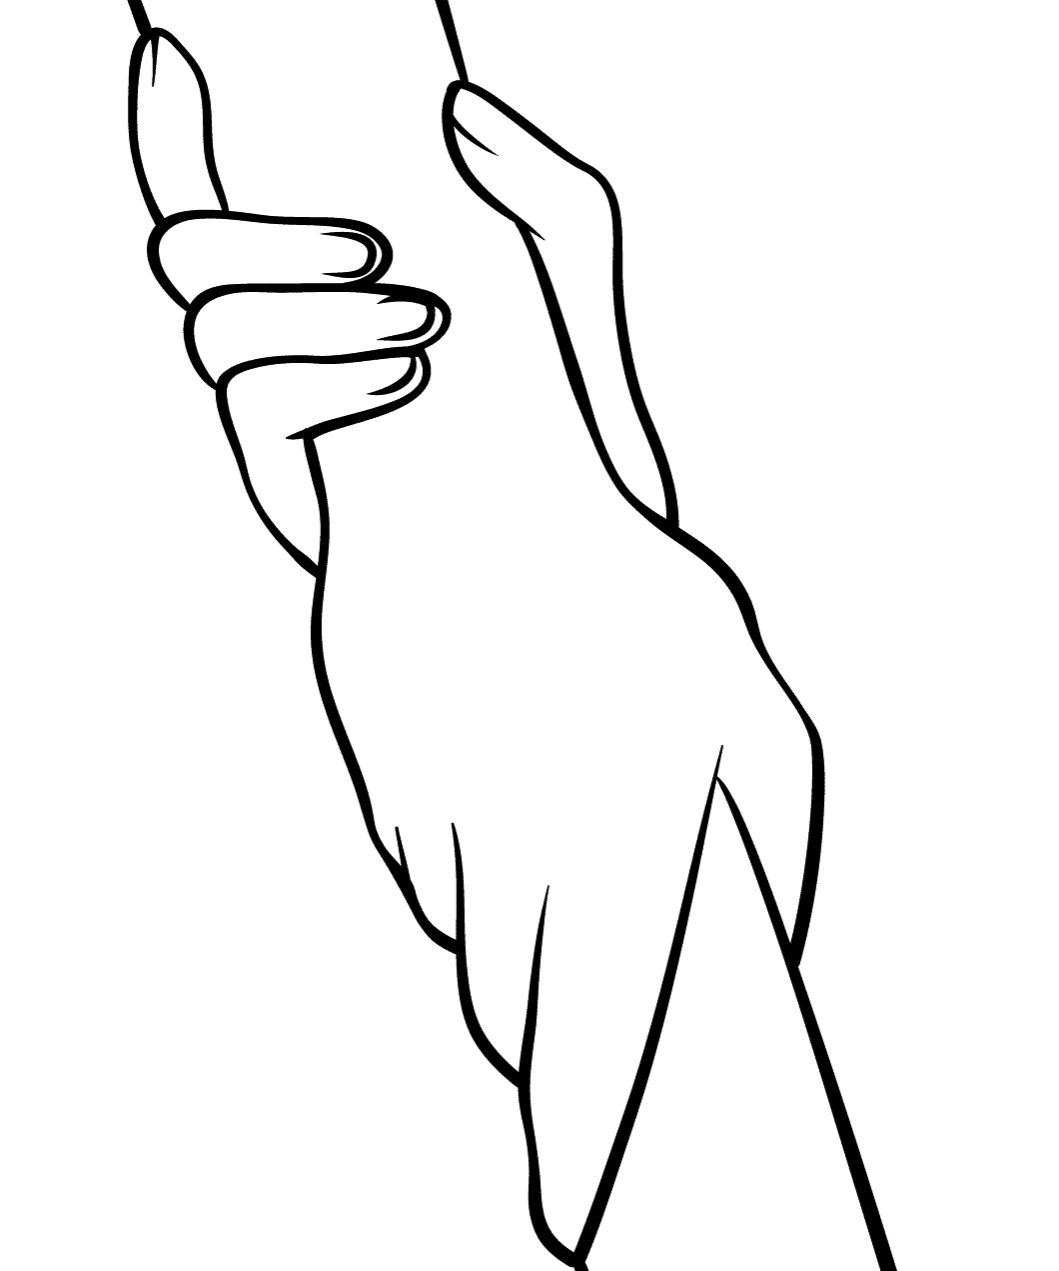 helping hands coloring page look feel and help friend coloring page hands helping